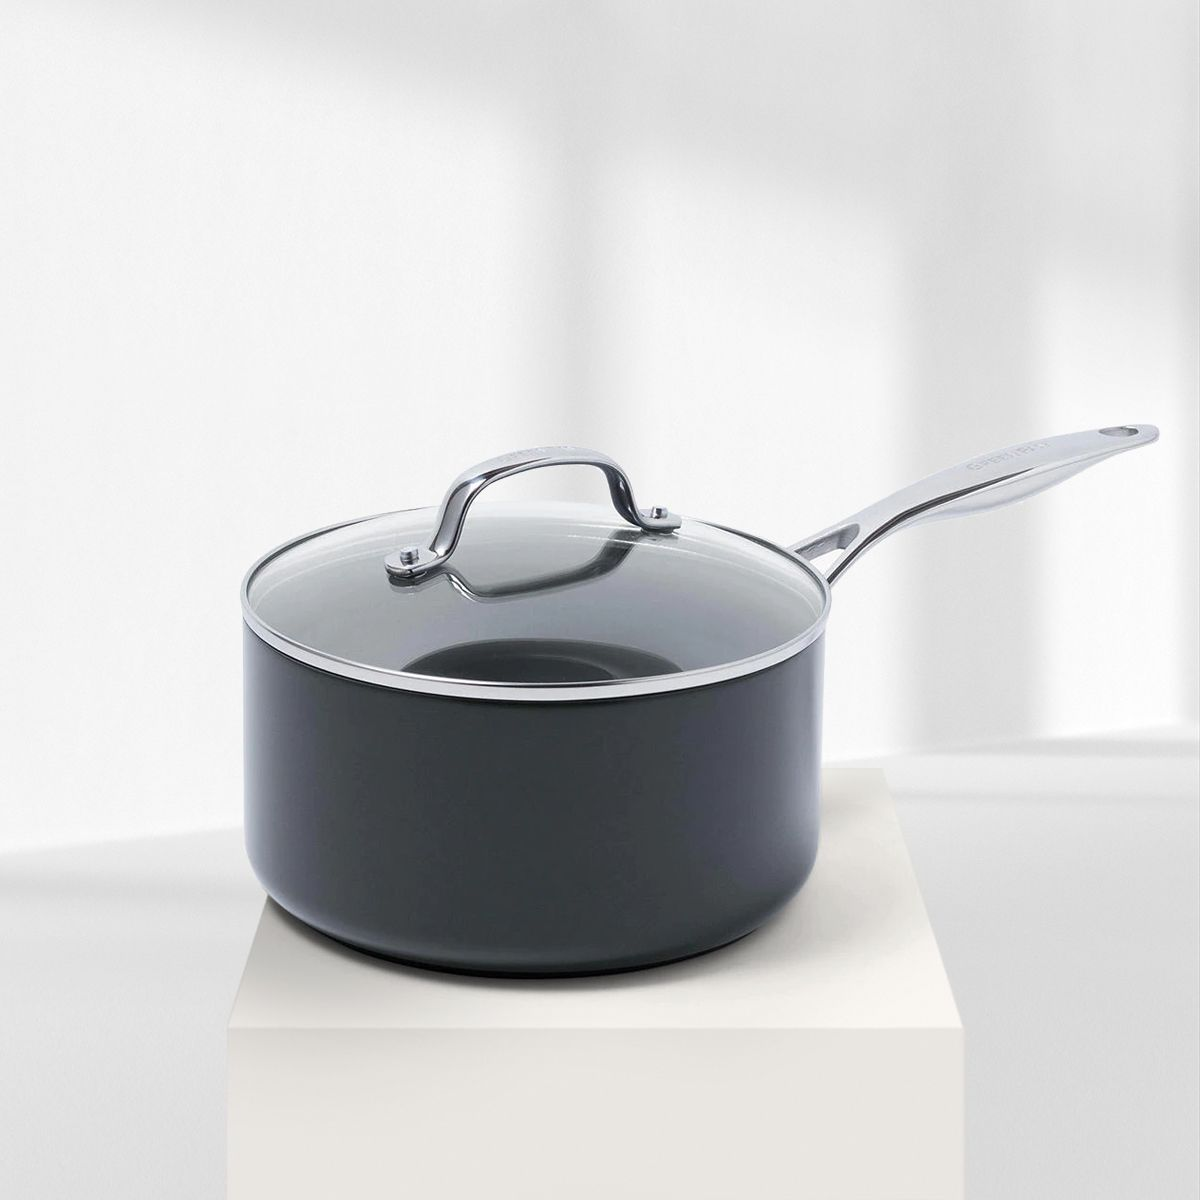 Up to 20% off Cookware